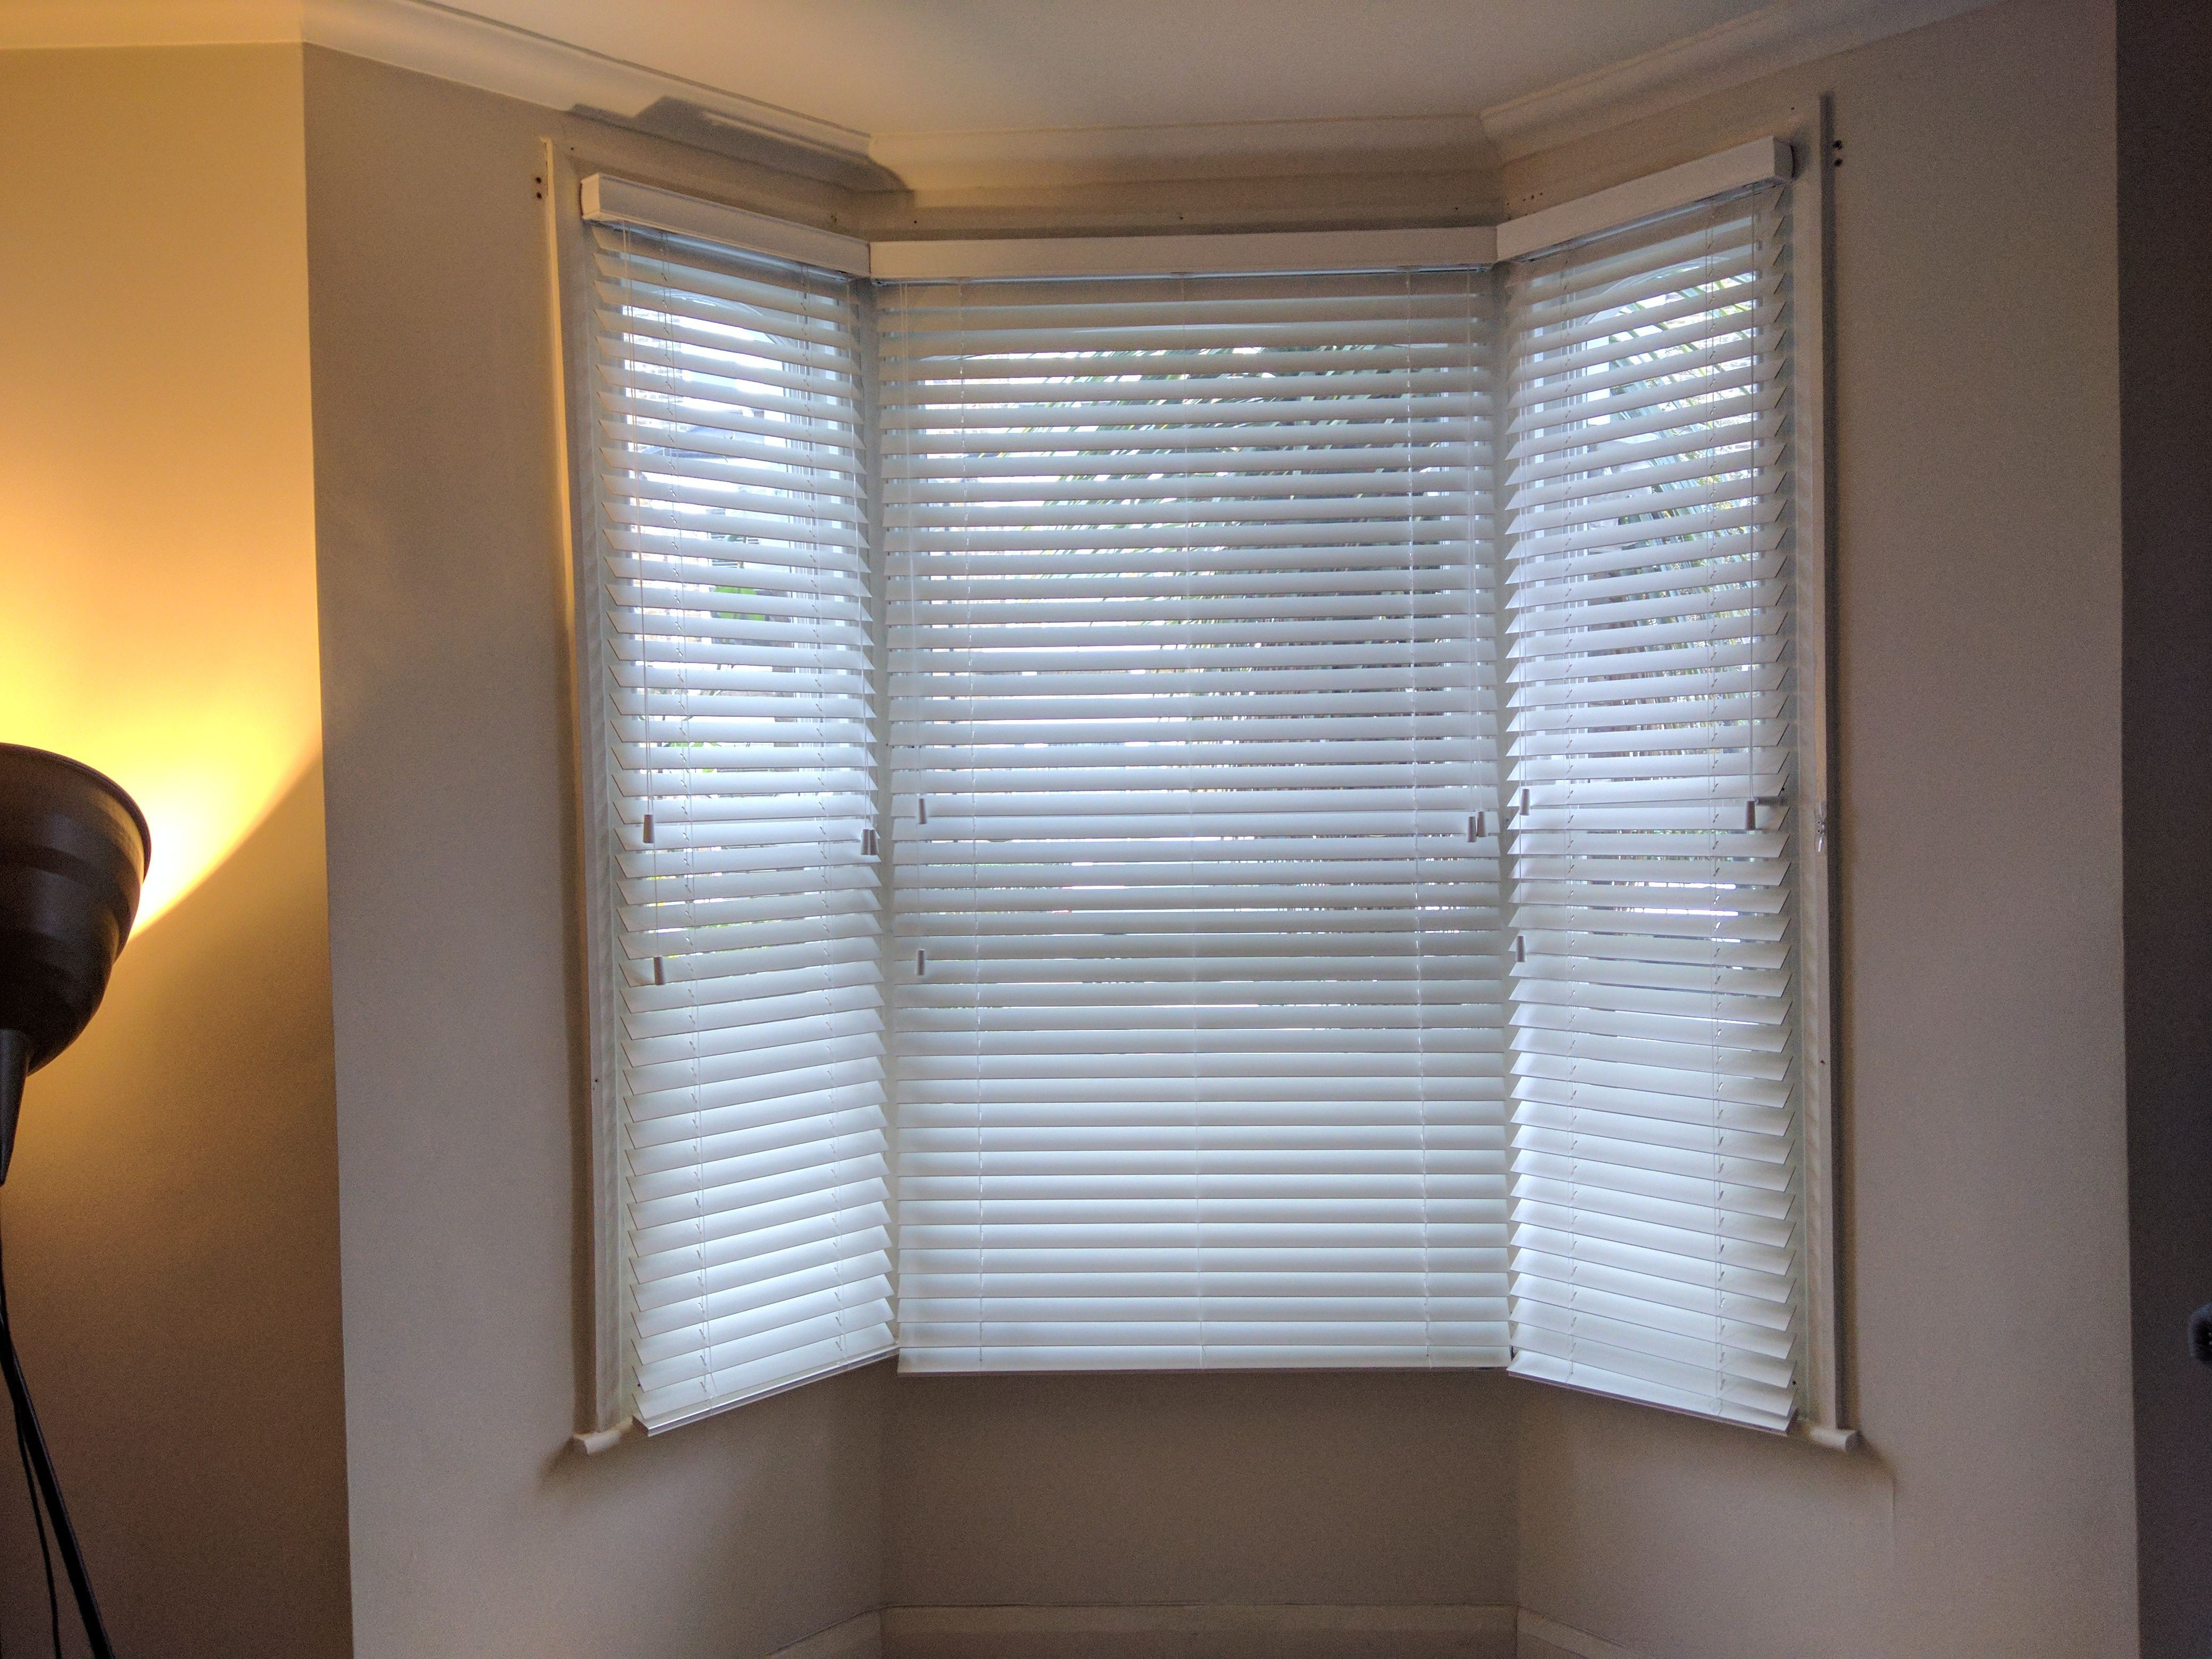 Wood Venetian Blinds Fitted To Bay Window In Archway North London Made To Measure Living Room Blinds Modern Blin Blinds Living Room Blinds Modern Blinds